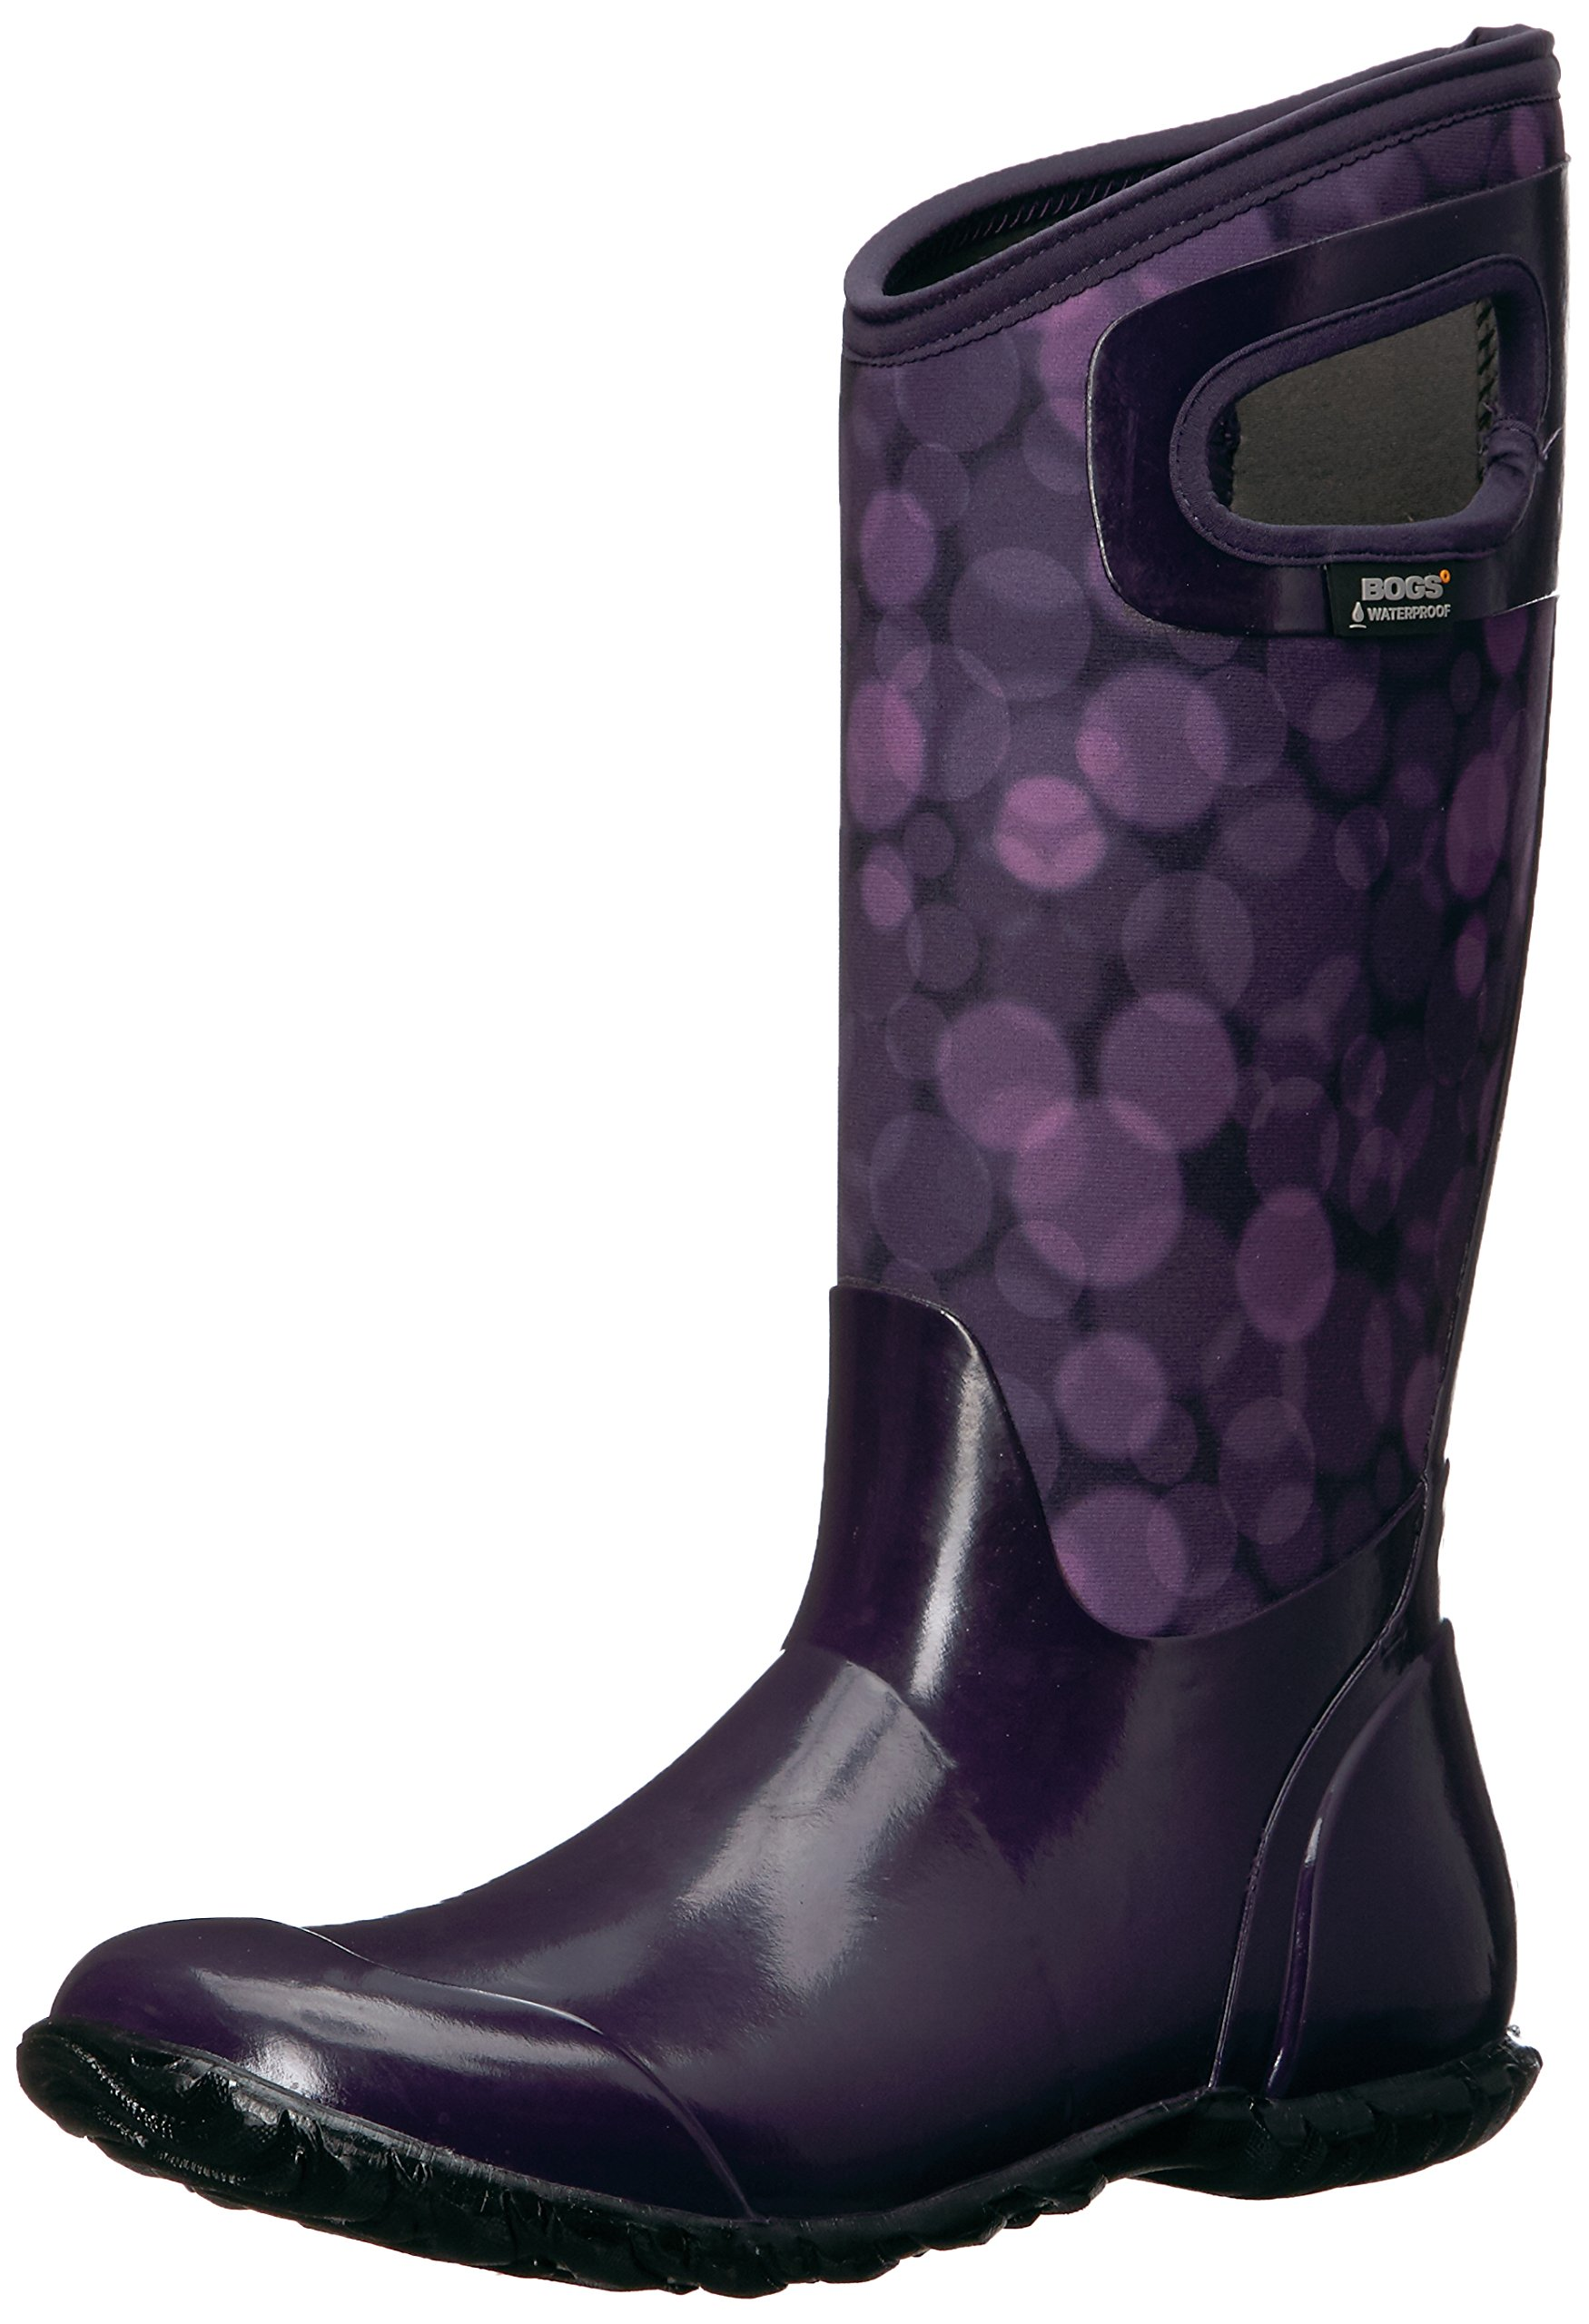 Bogs Women's North Hampton Rain Snow Boot, Eggplant Multi, 6 M US